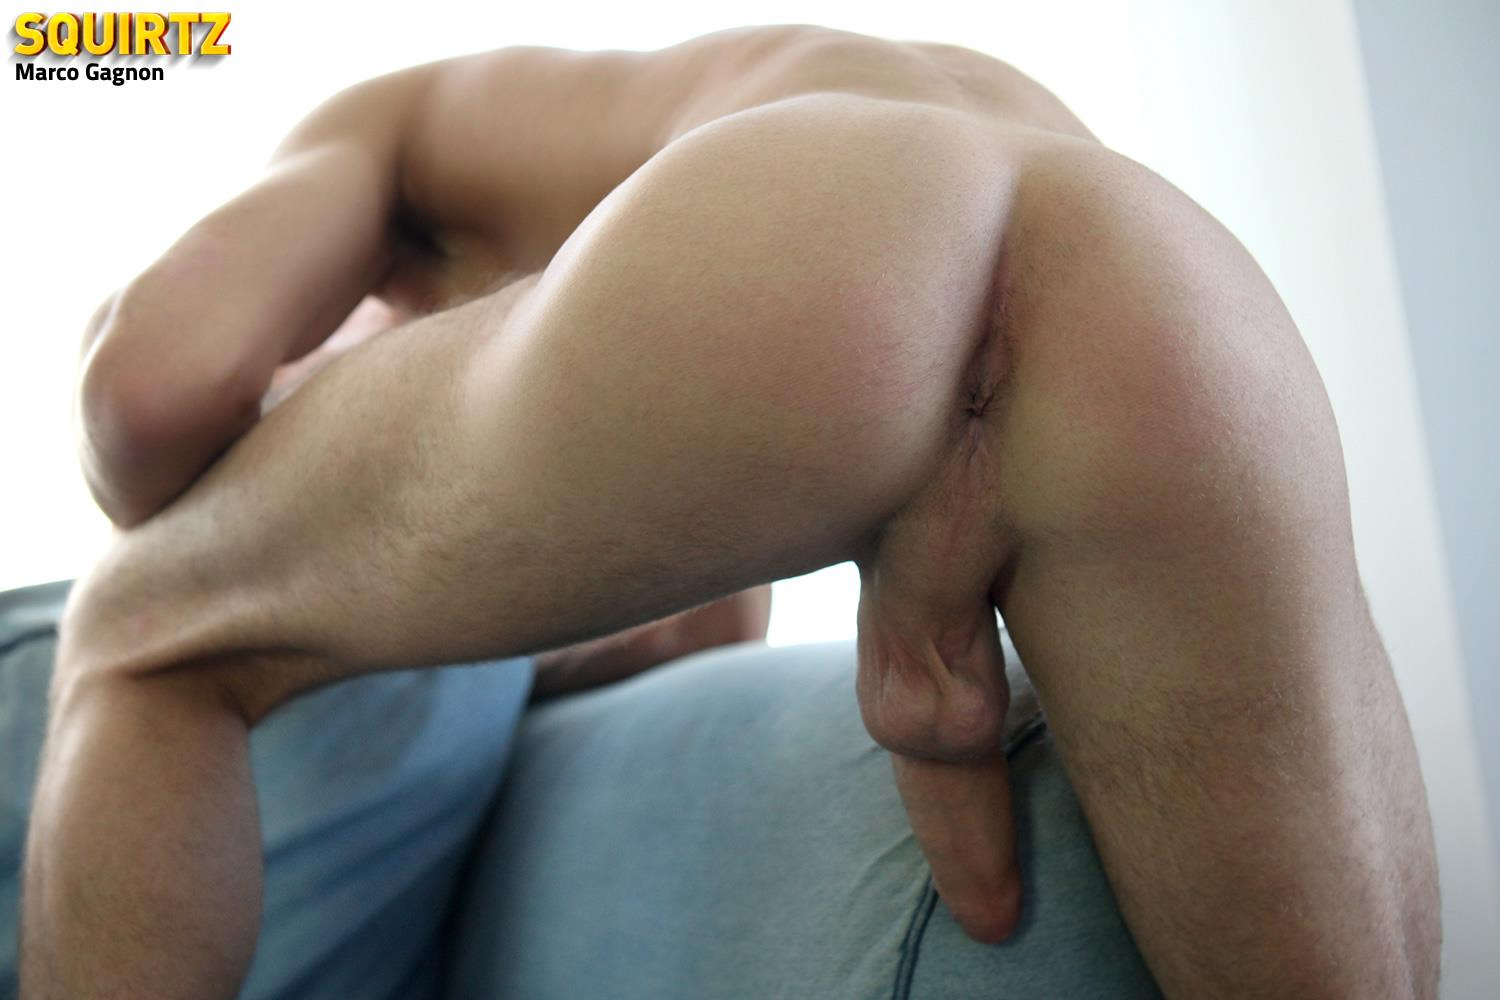 Squirtz-Marco-Gagnon-Twink-With-A-Massive-Uncut-Cock-Jerk-Off-Amateur-Gay-Porn-22 Young and Hung Marco Gagnon Stokes His Massive Uncut Cock